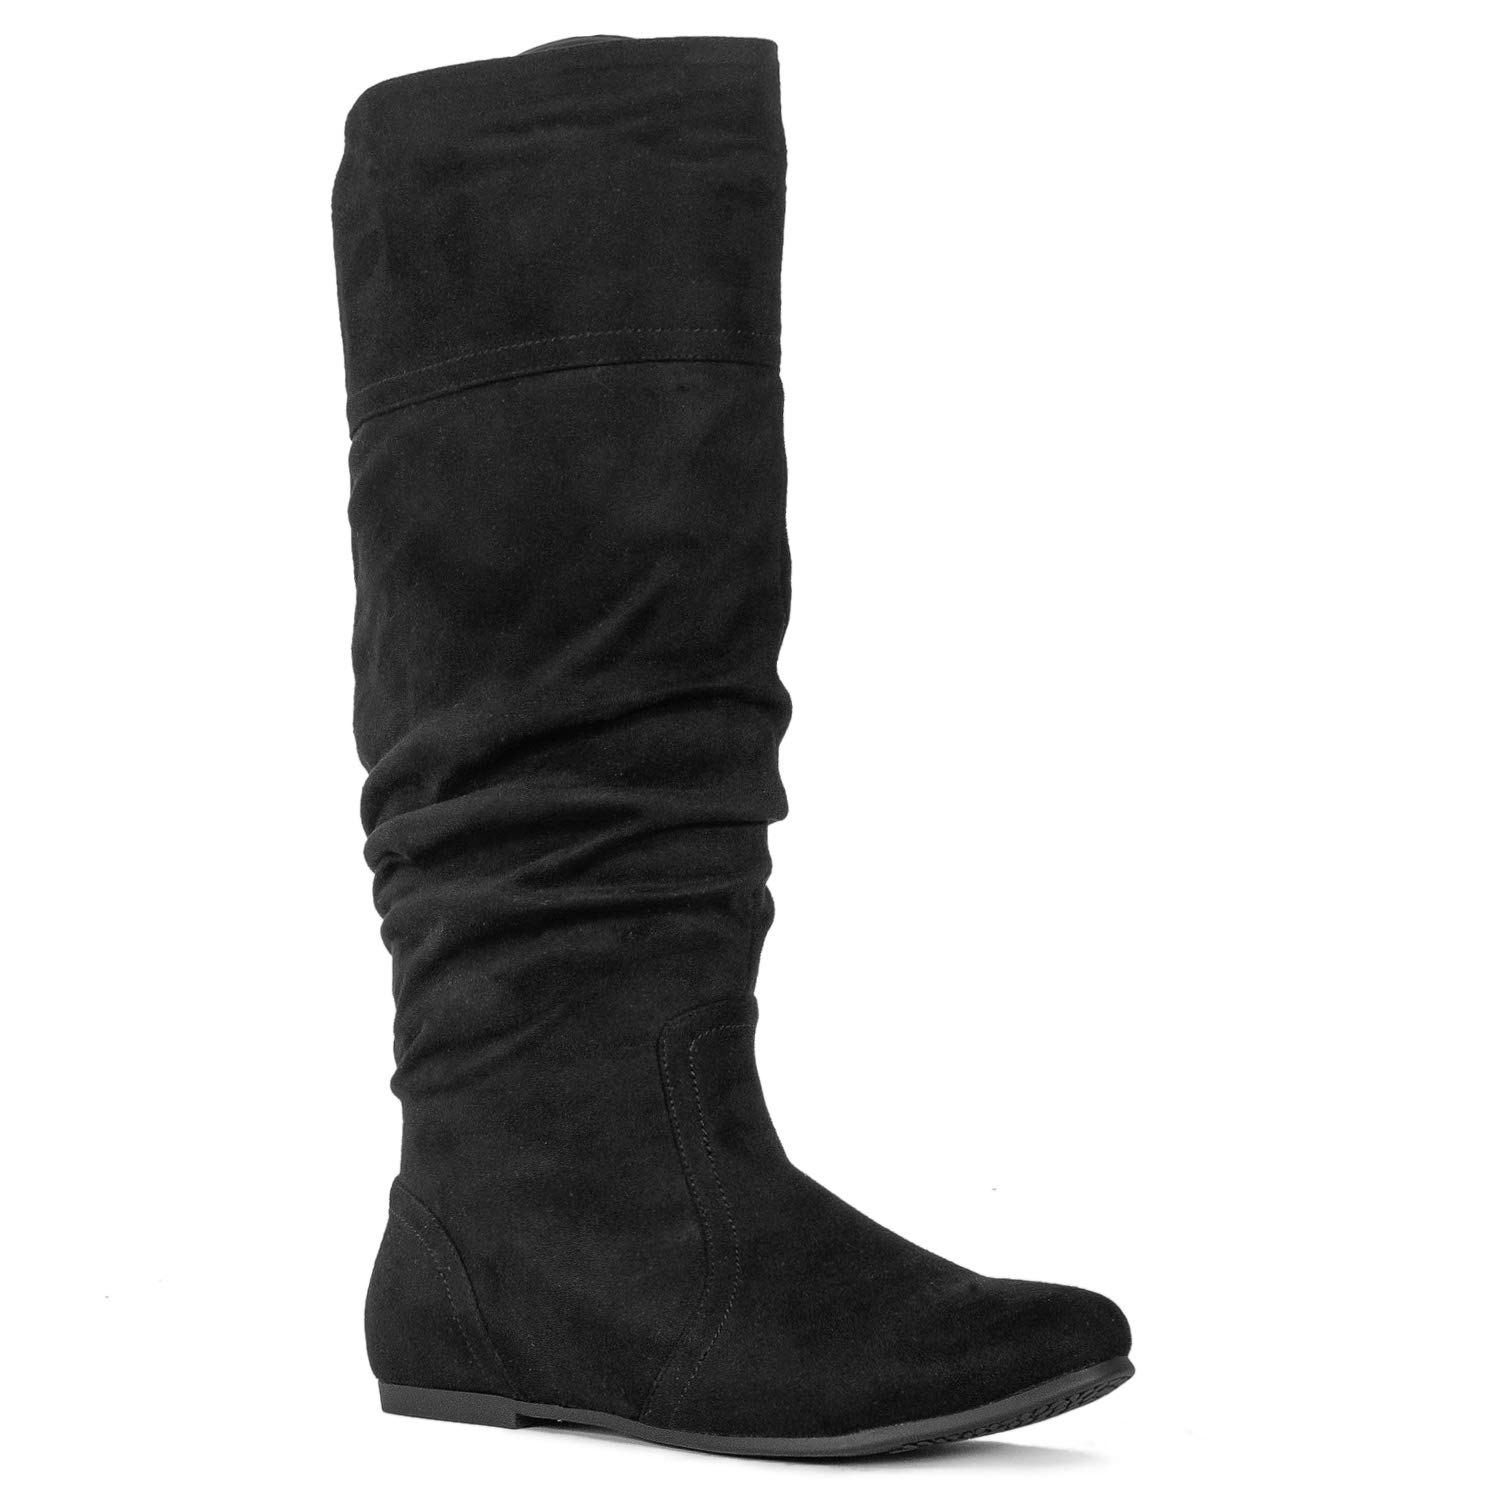 RF ROOM OF FASHION Touched-11 Boots (Black SU Size 8)